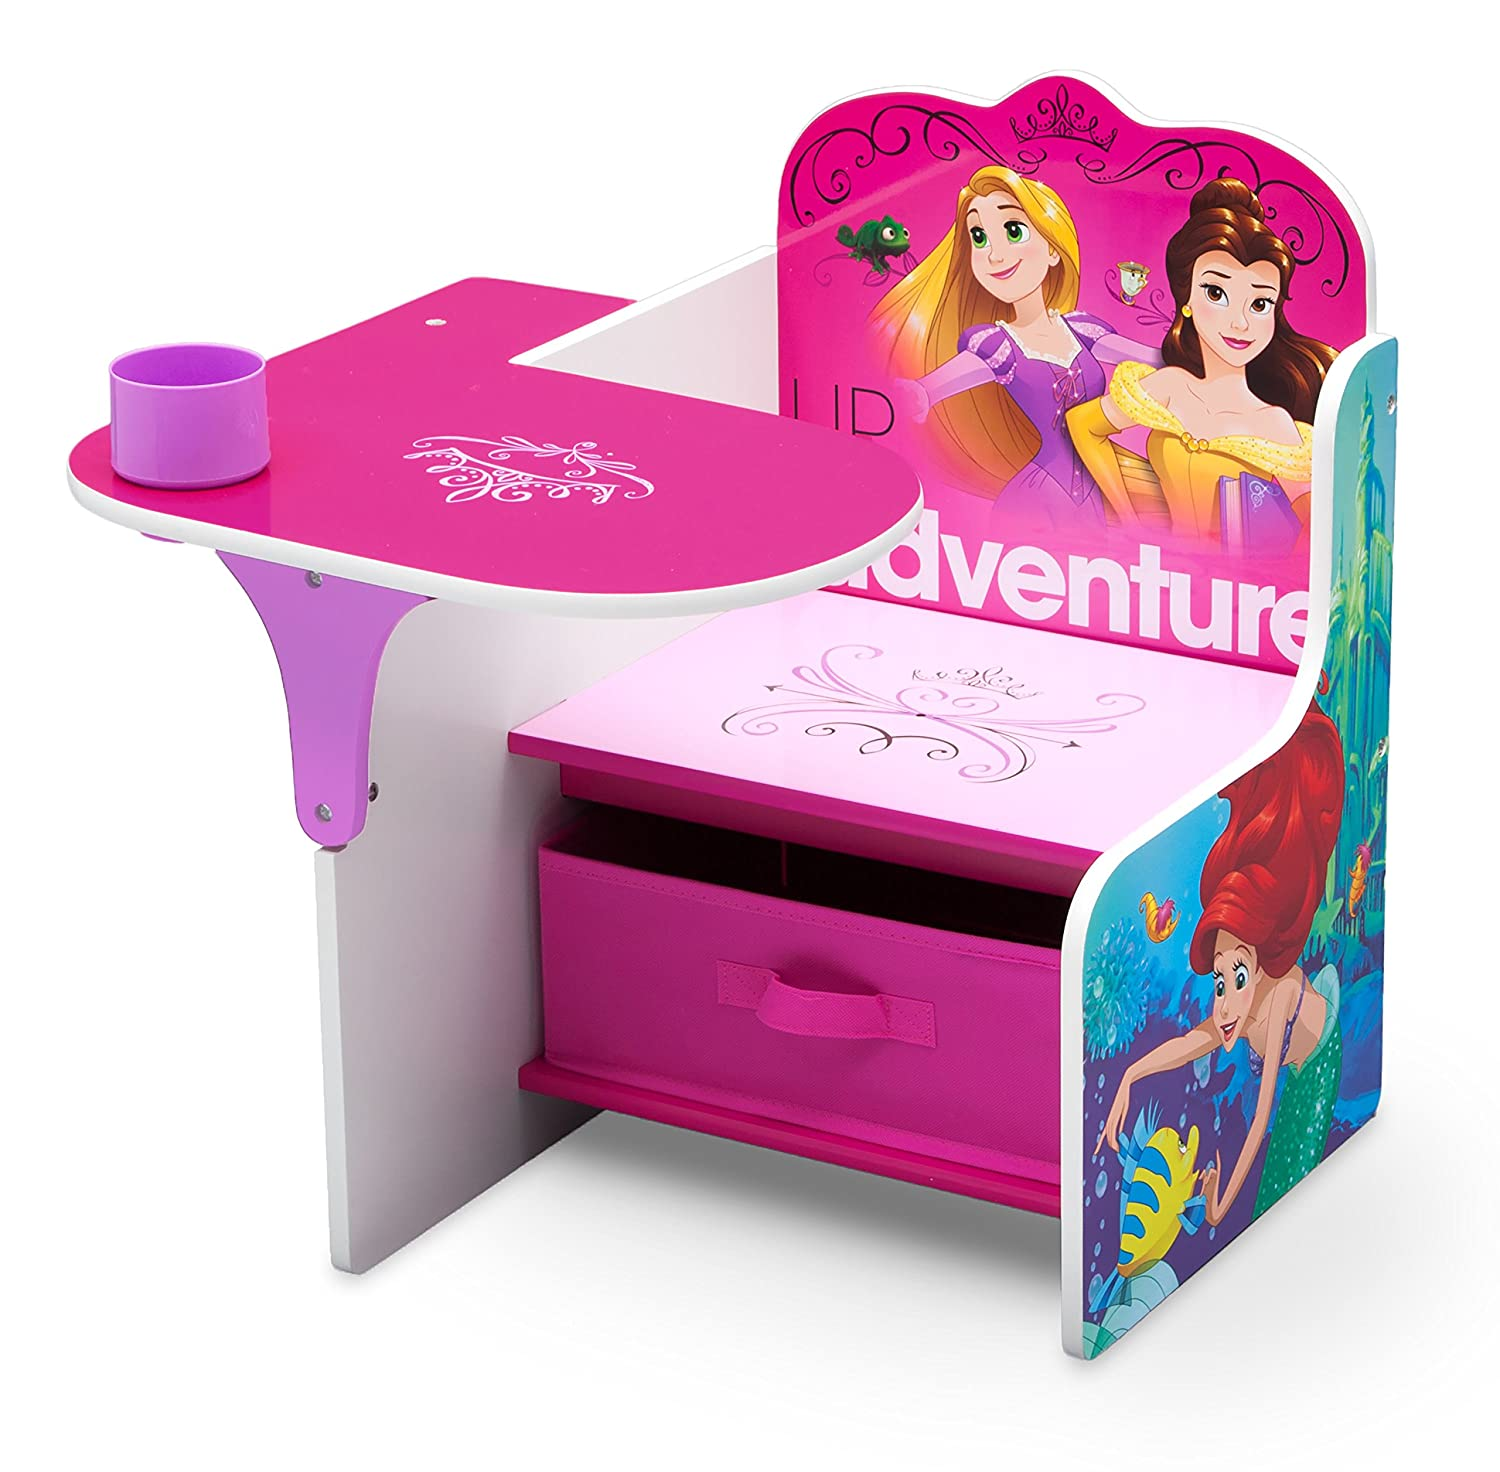 Disney Winnie The Pooh Chair Desk with Storage Bin: Amazon.co.uk: Baby